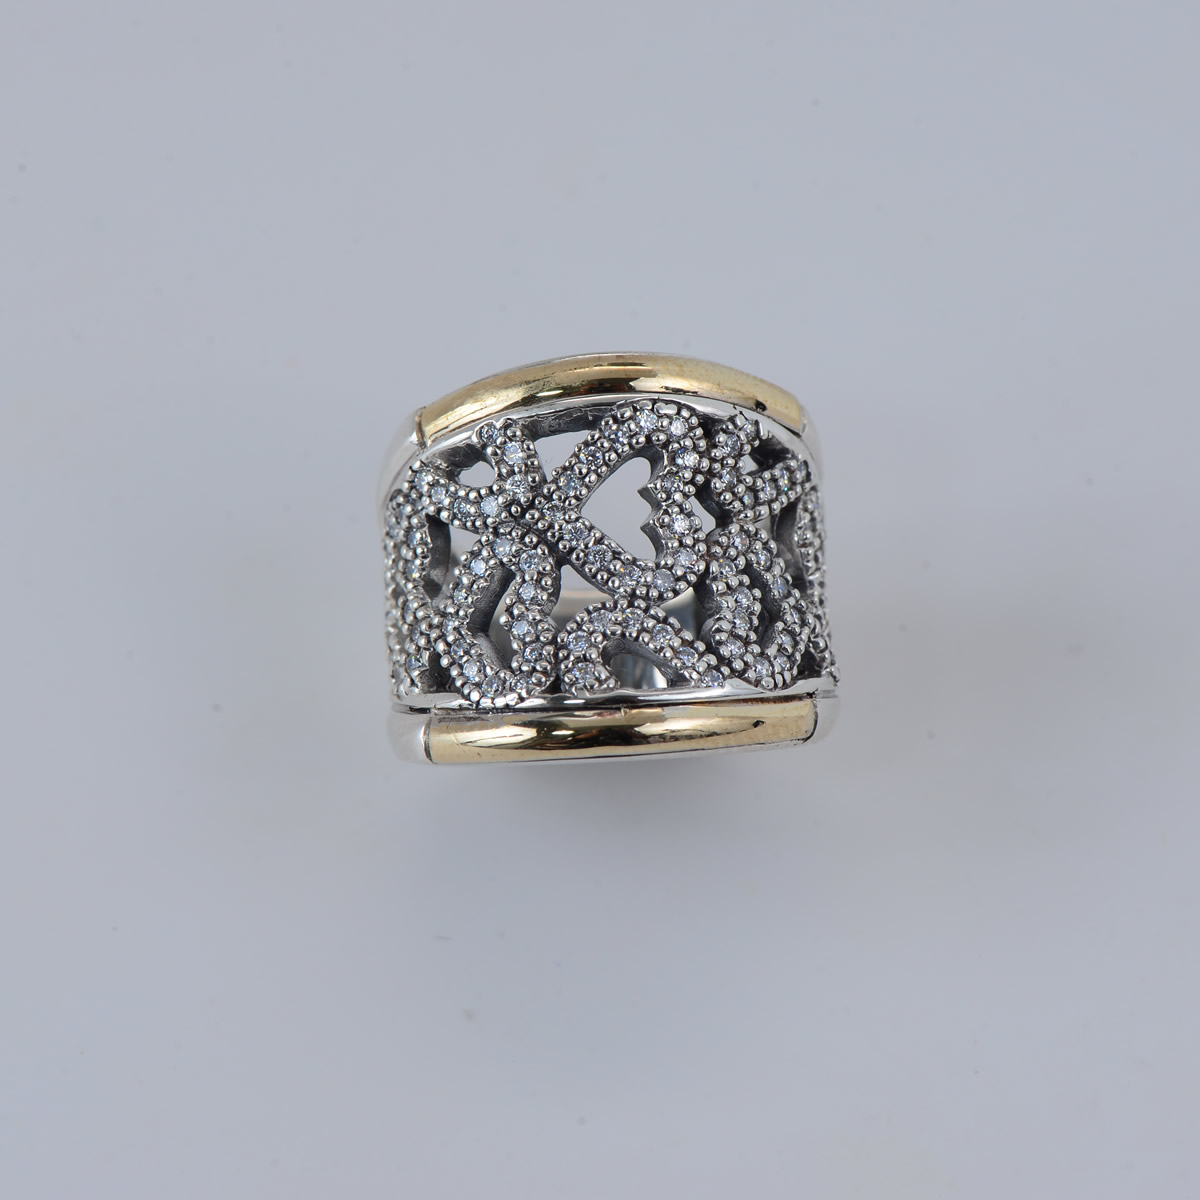 Elegant Sterling Silver 9.25 Ring with Gold tone plating